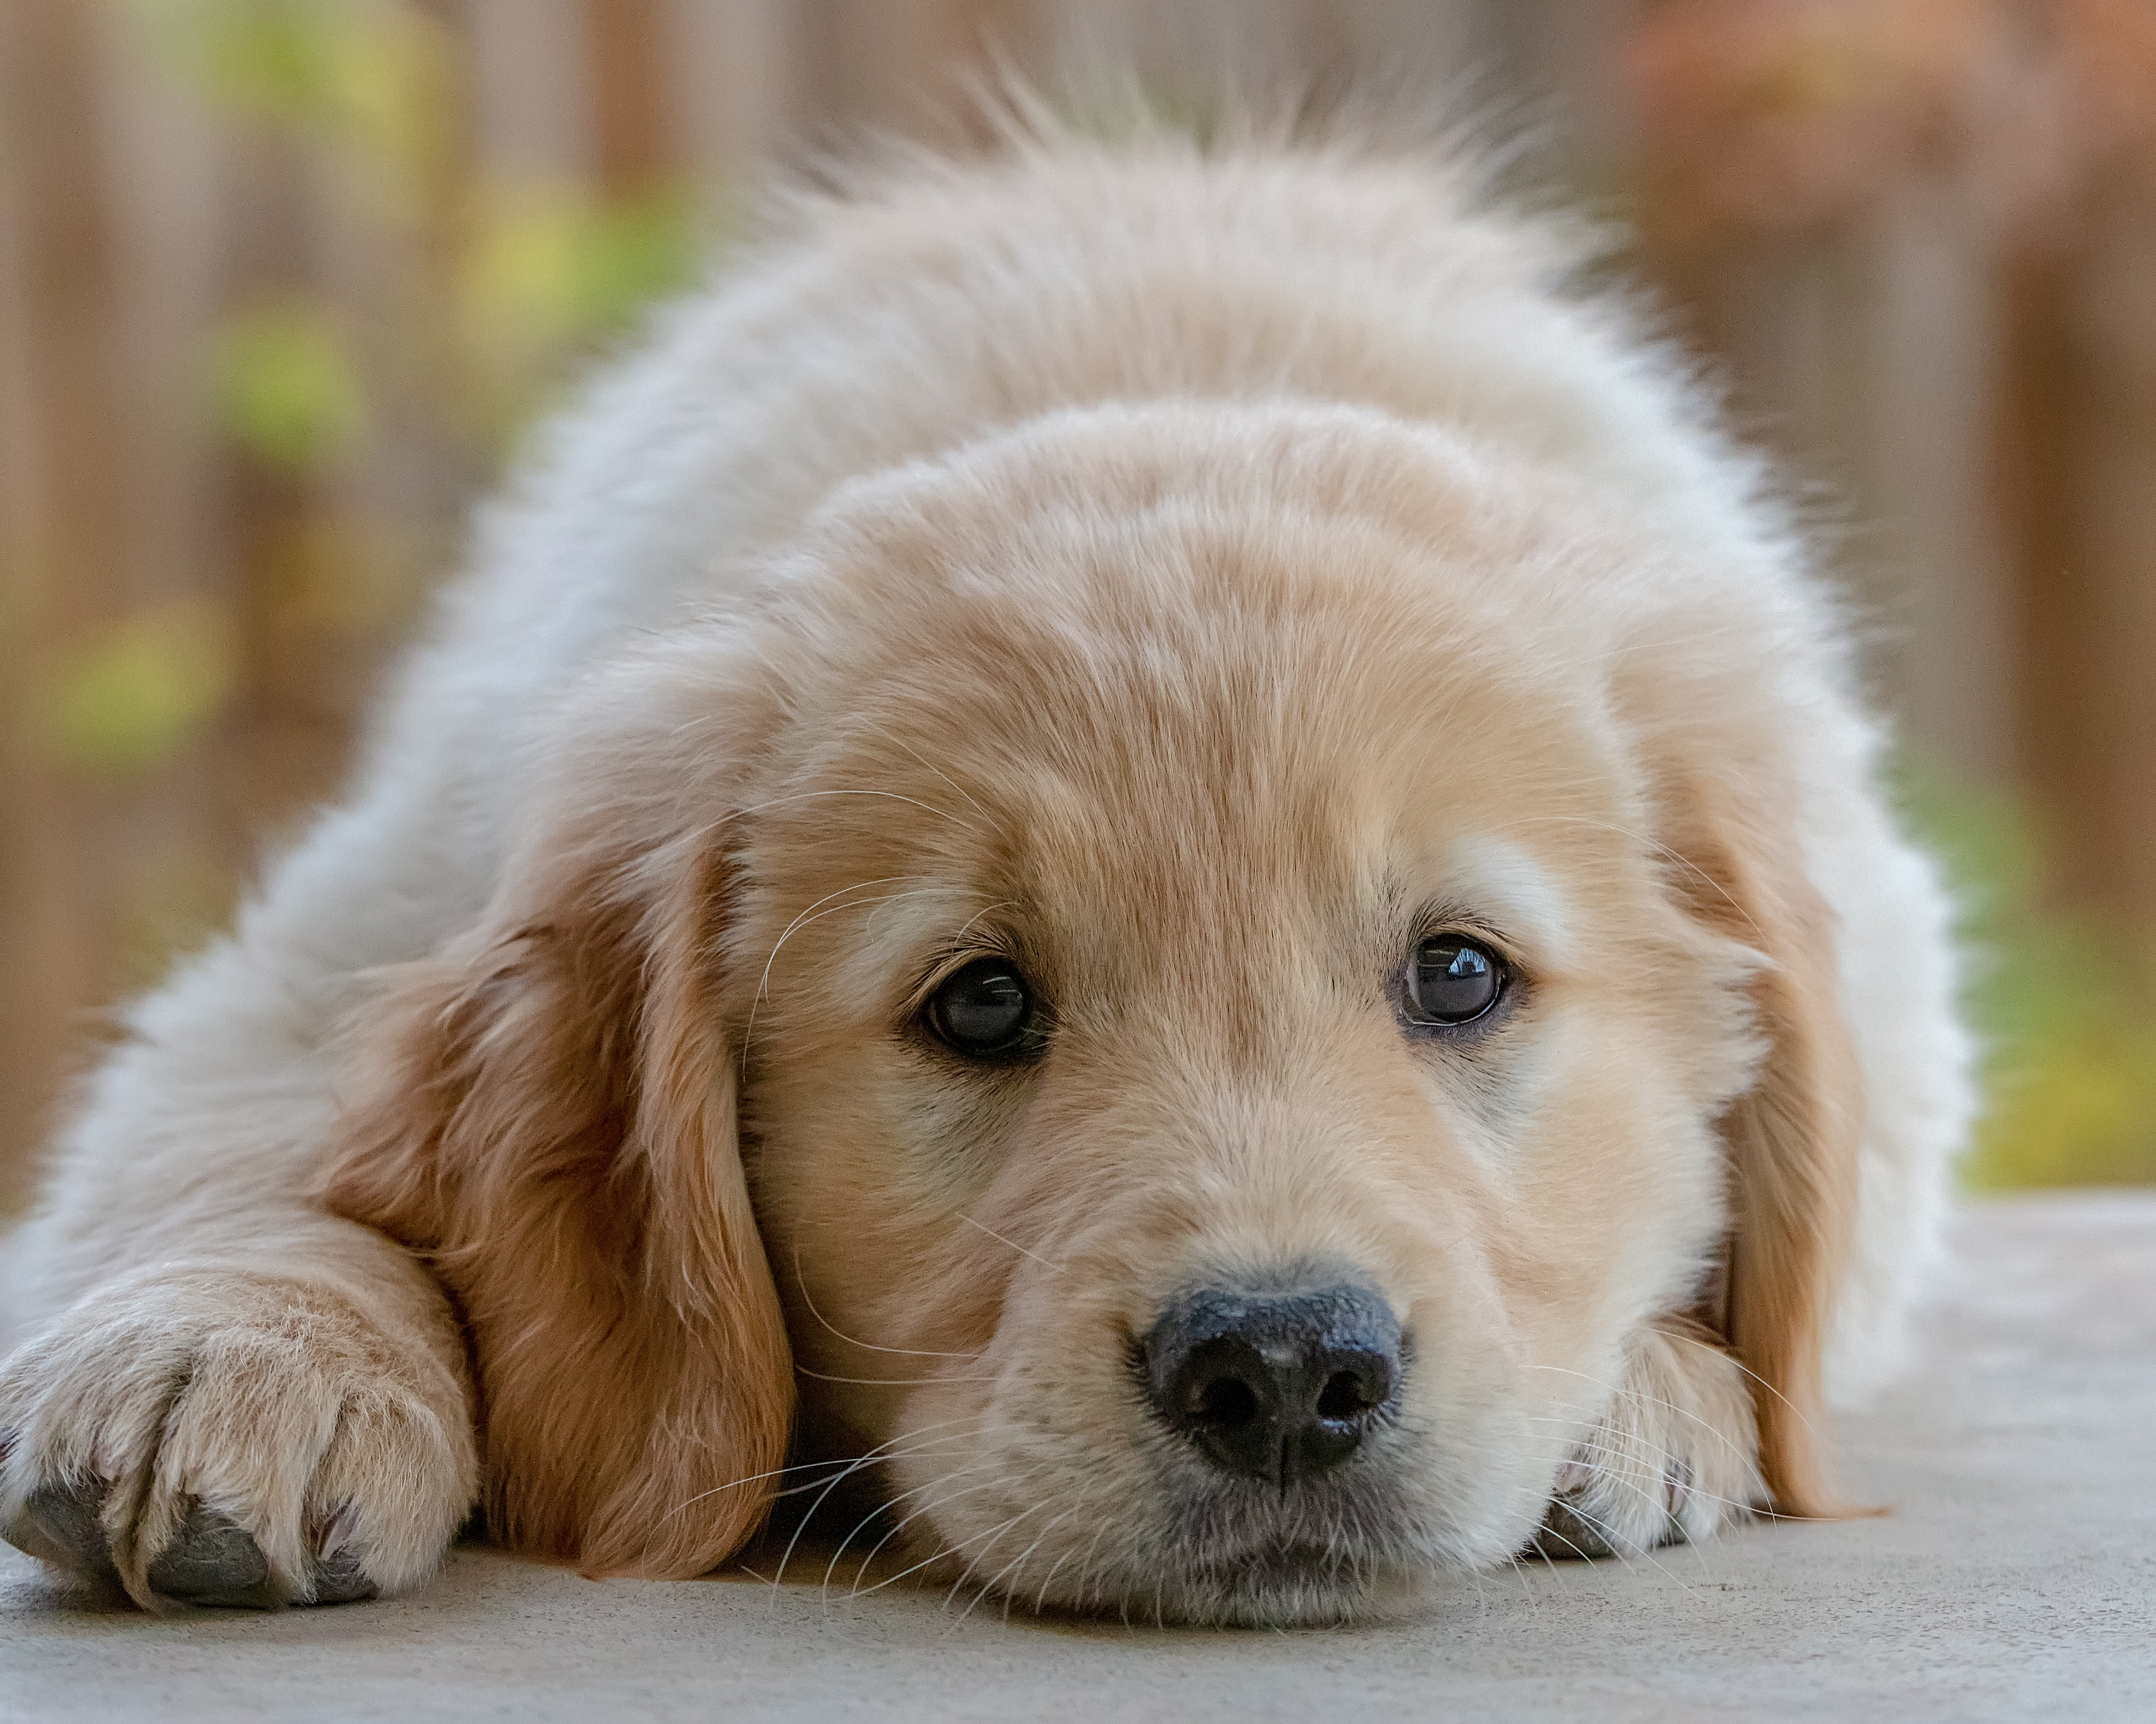 Golden retriever puppy laying down facing the camera with a sad look in his eyes